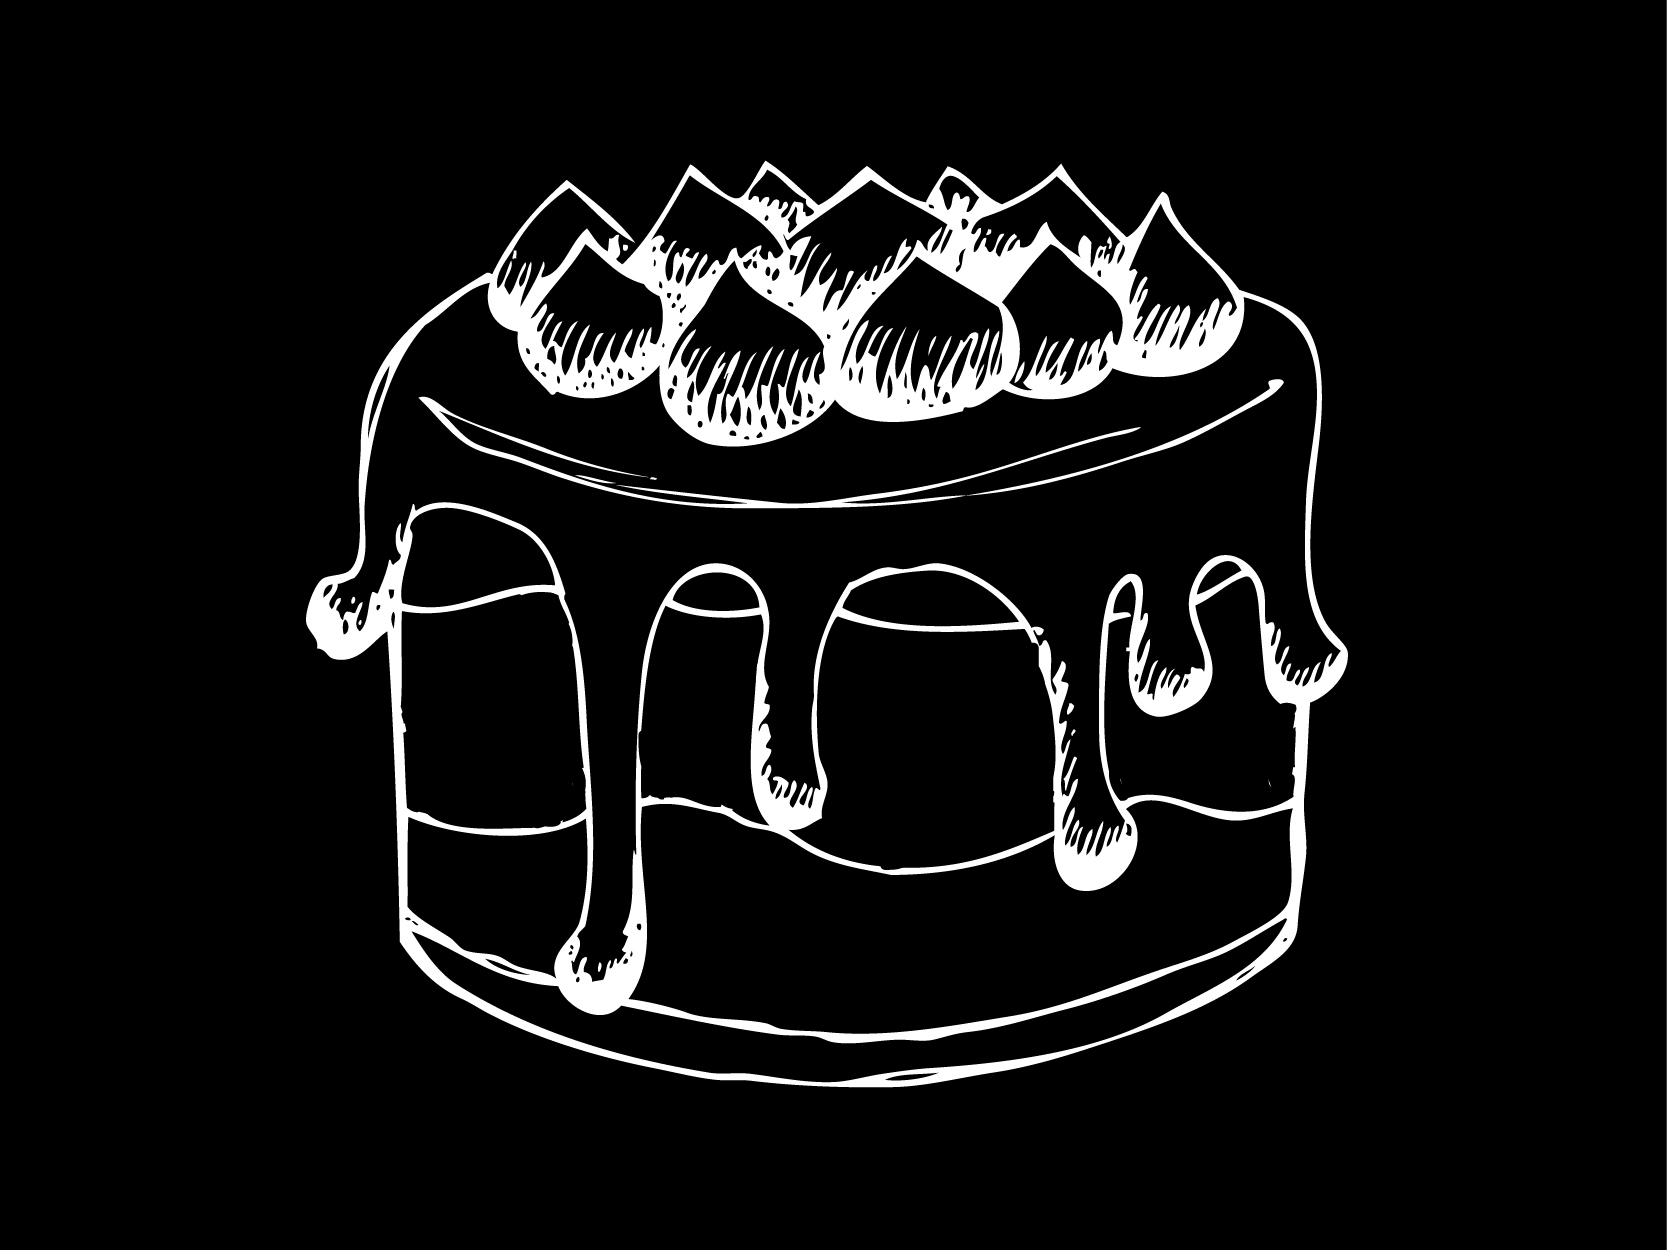 black and white chalk style drawing of a cake with 2 layers, dripping ganache, and topped with peaked merengue